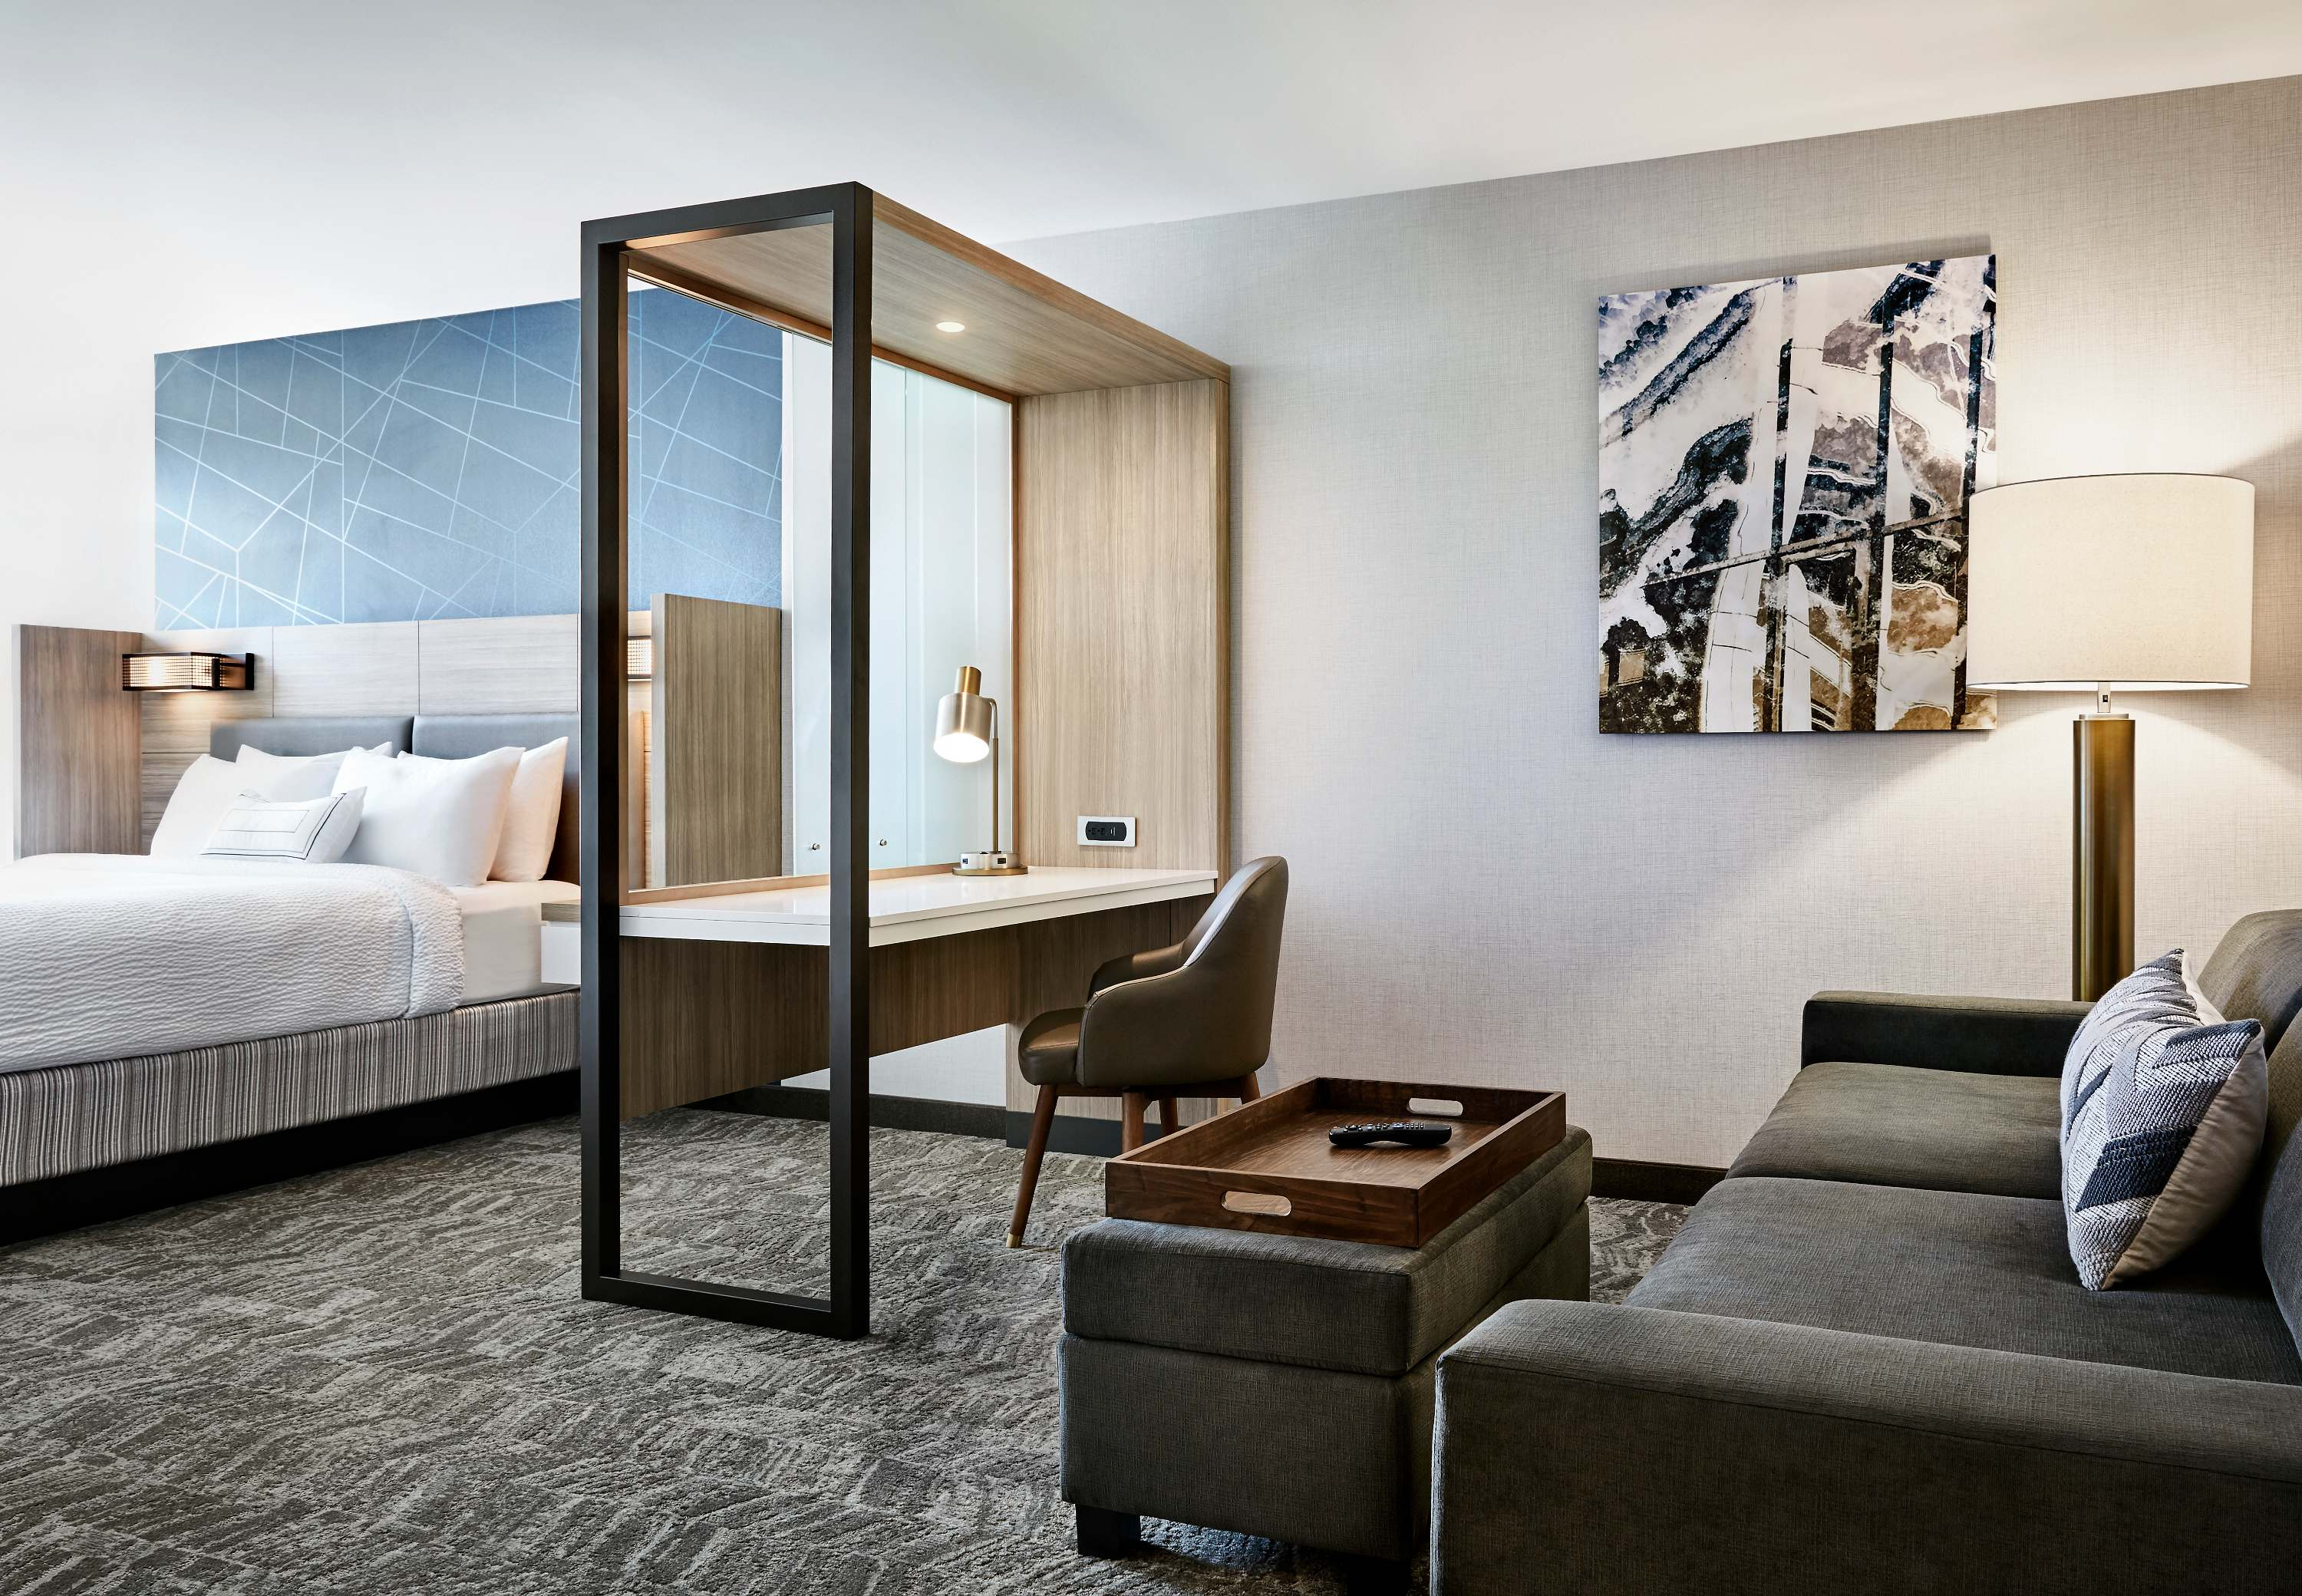 SpringHill Suites by Marriott Albuquerque North/Journal Center image 5